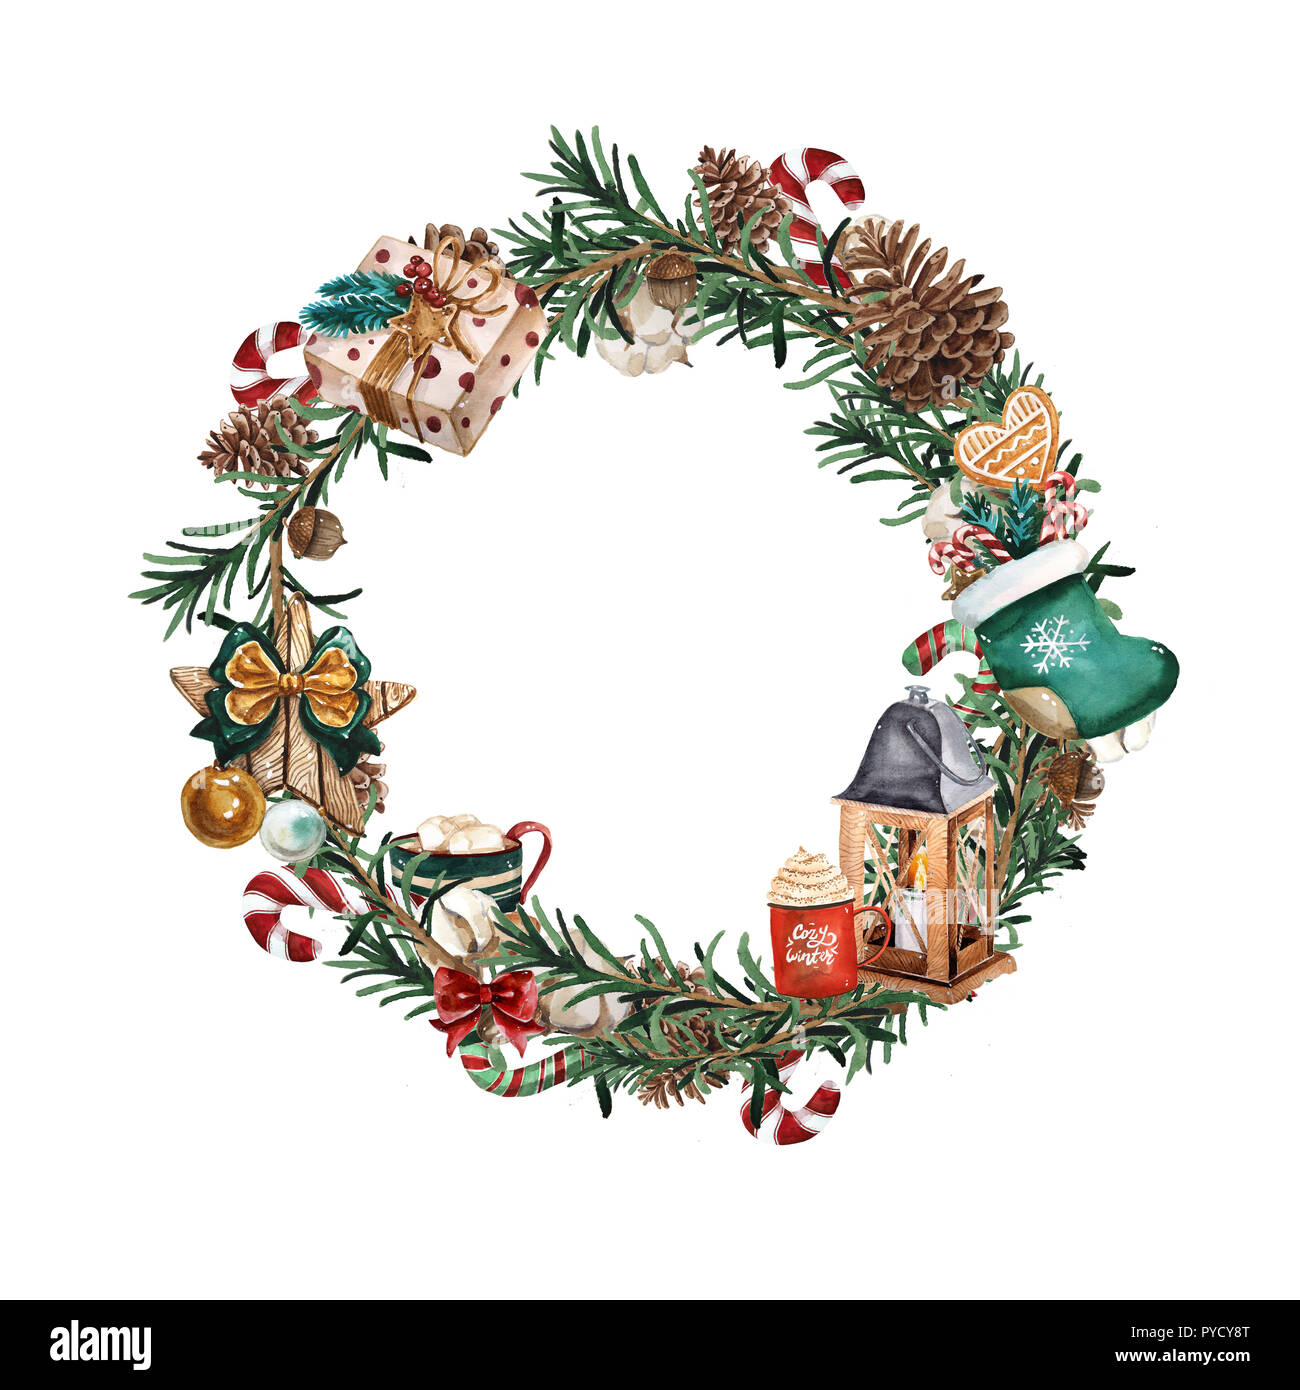 Wreath with pine branches and red berries, cotton and pine cones ...